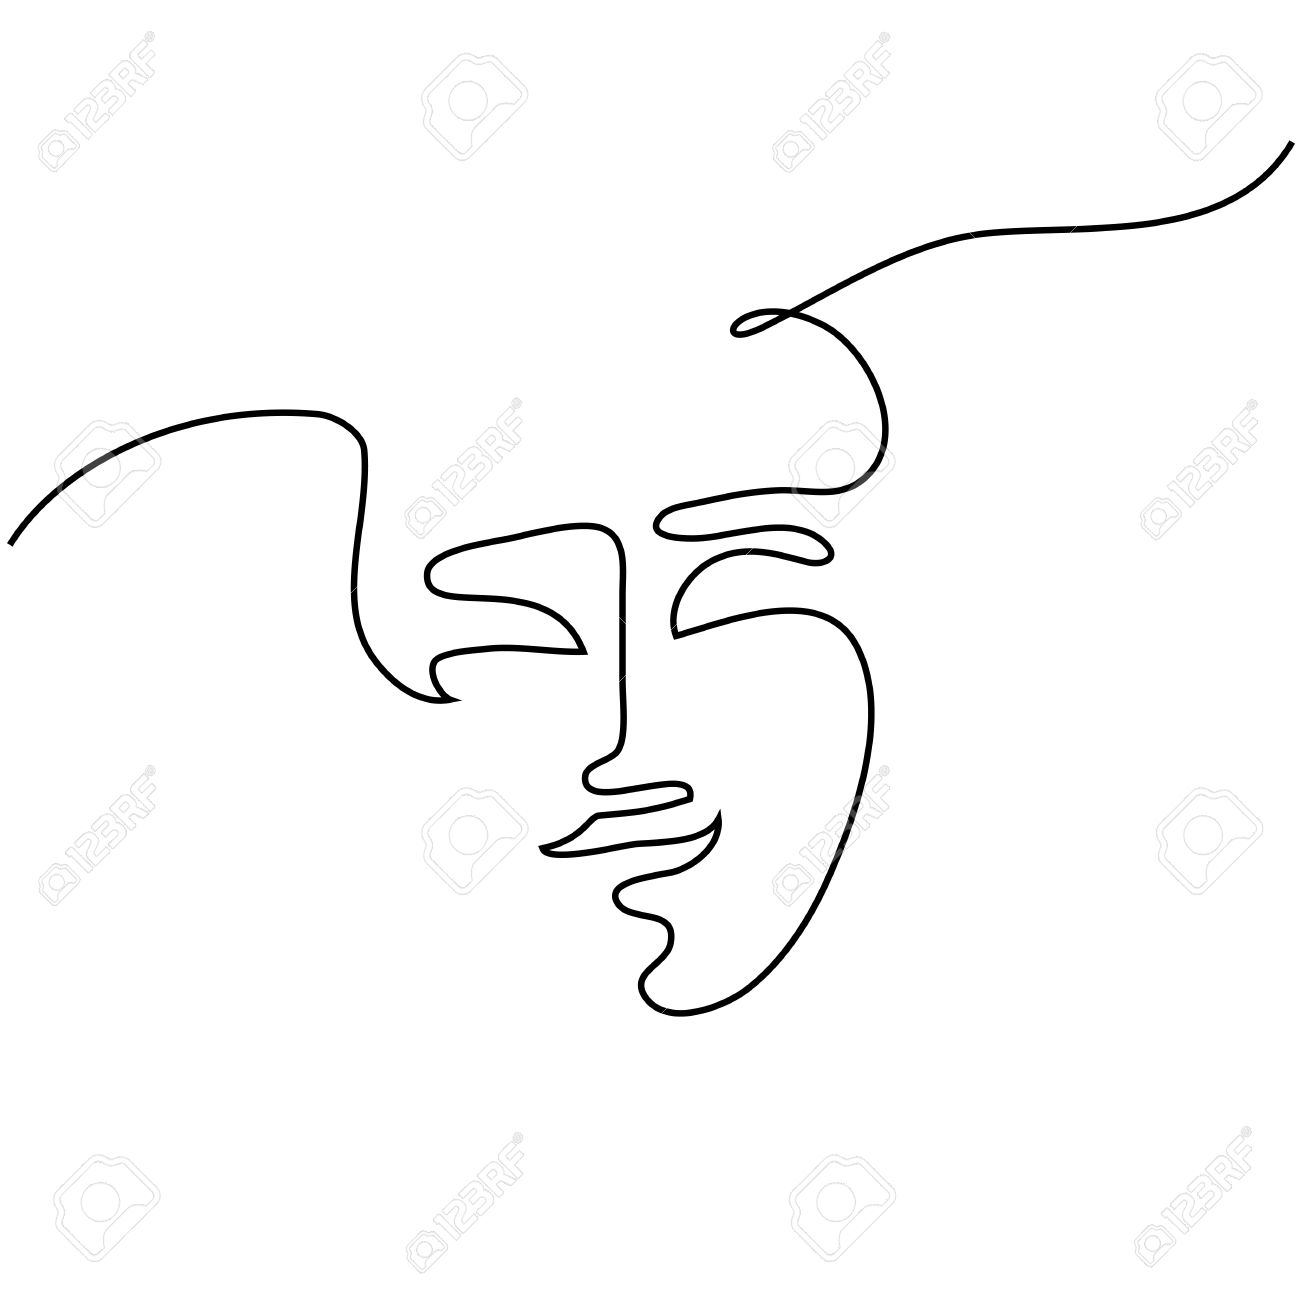 1300x1300 Continuous Line Drawing. Abstract Portrait Of A Woman. Vector